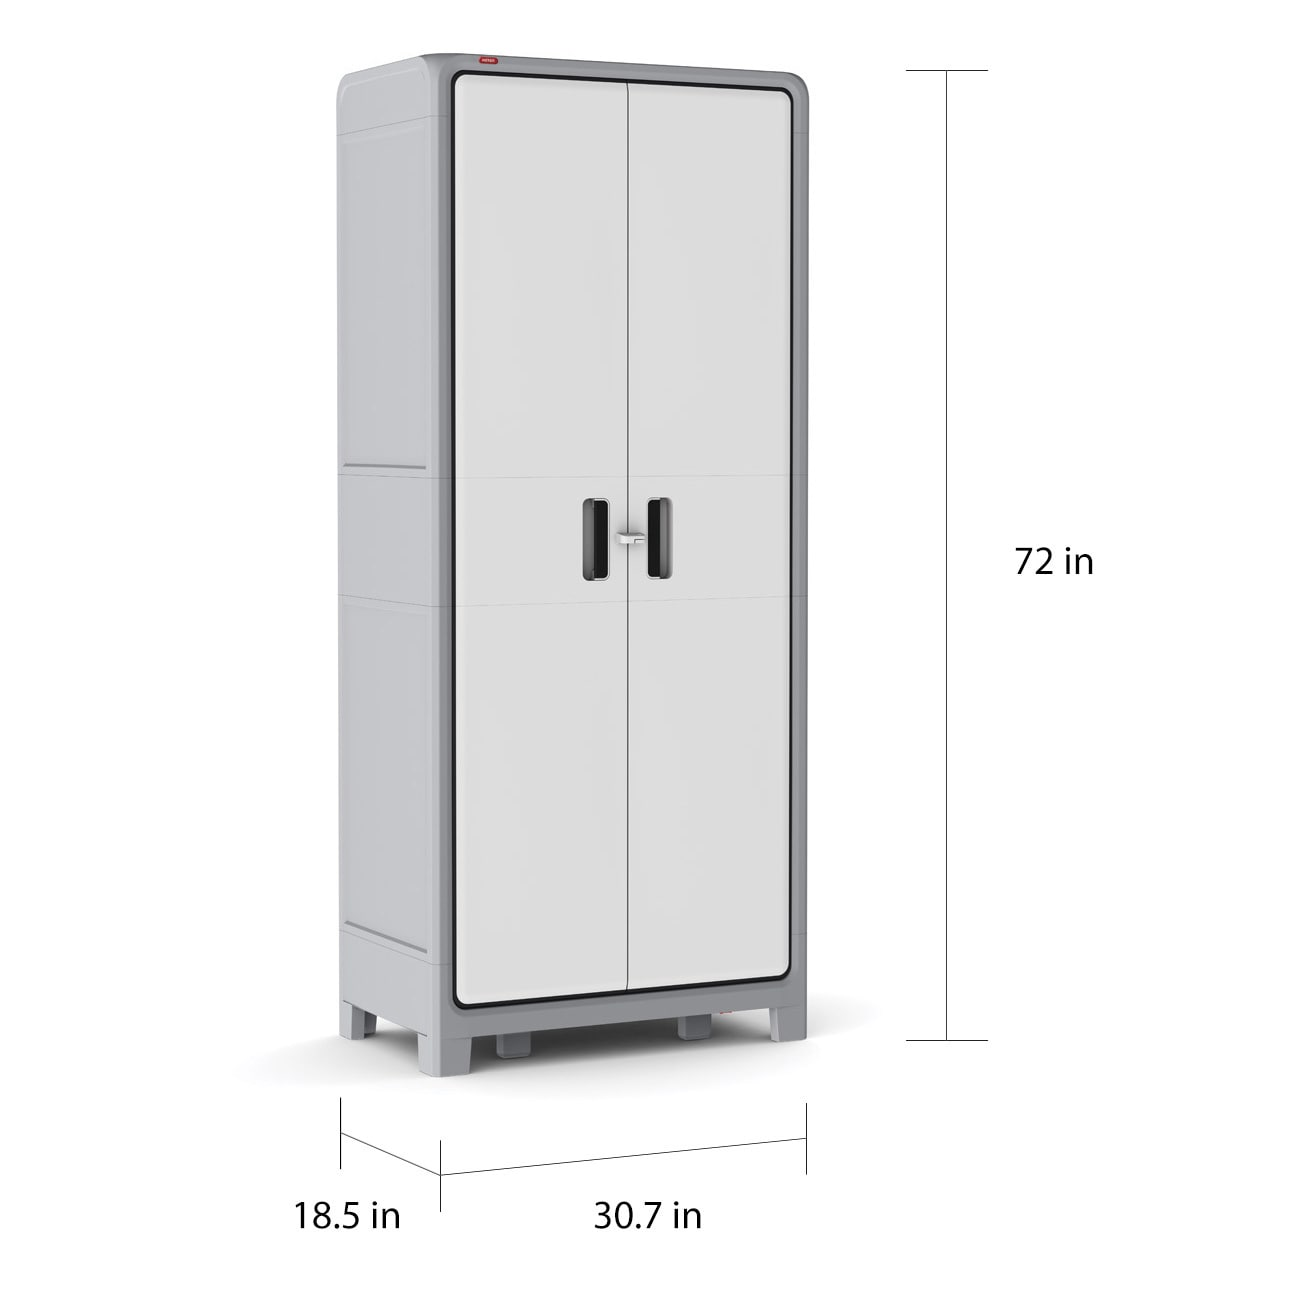 Shop Keter Optima Wonder White And Grey Plastic Freestanding Utility Cabinet    Free Shipping Today   Overstock.com   12056988